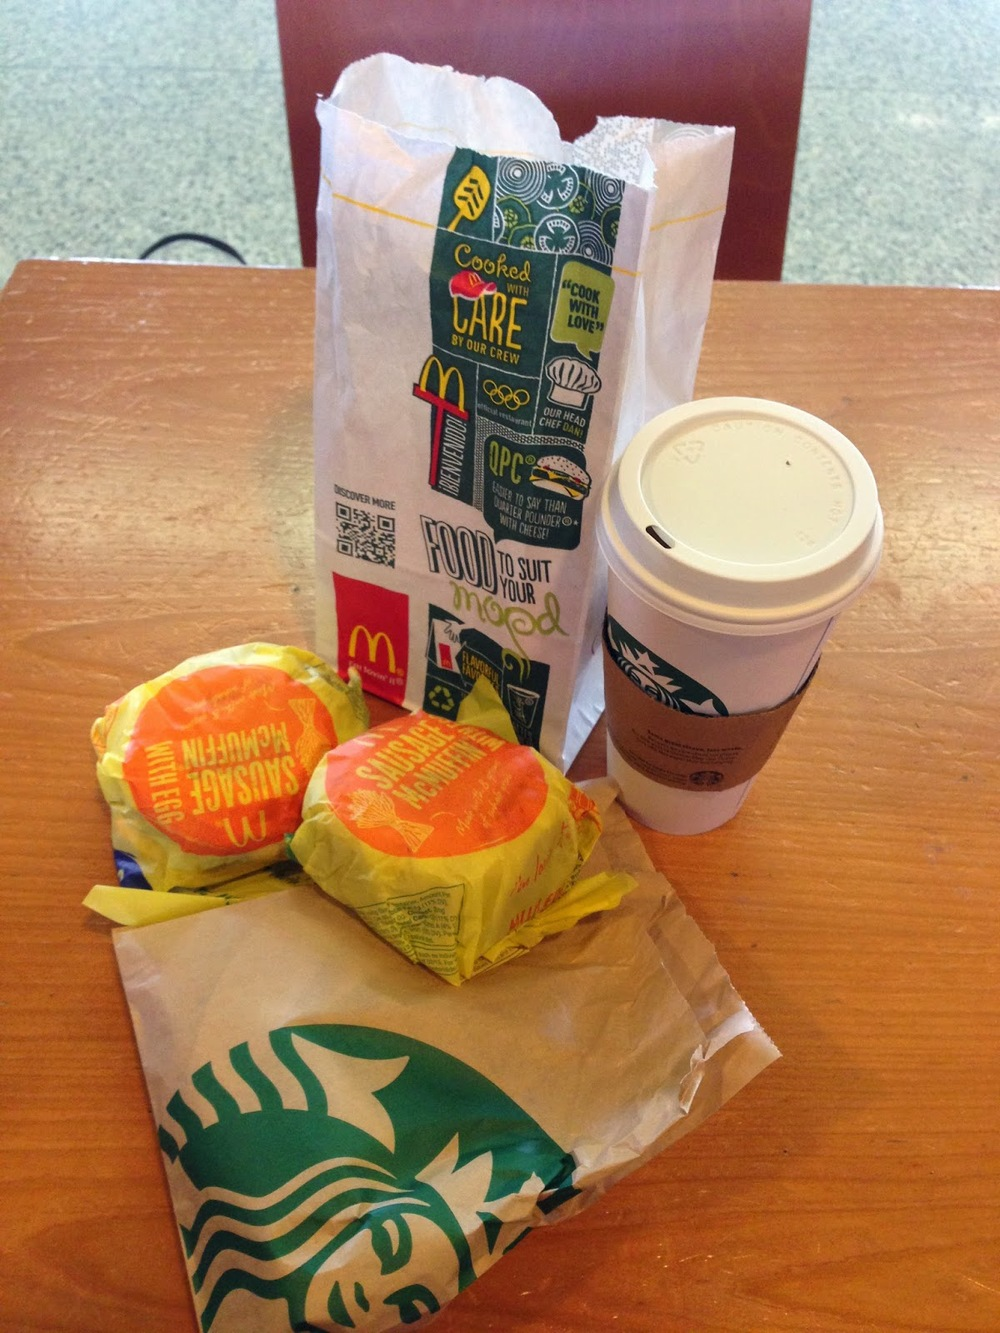 Our breakfast in the Chicago airport. Welcome to America!